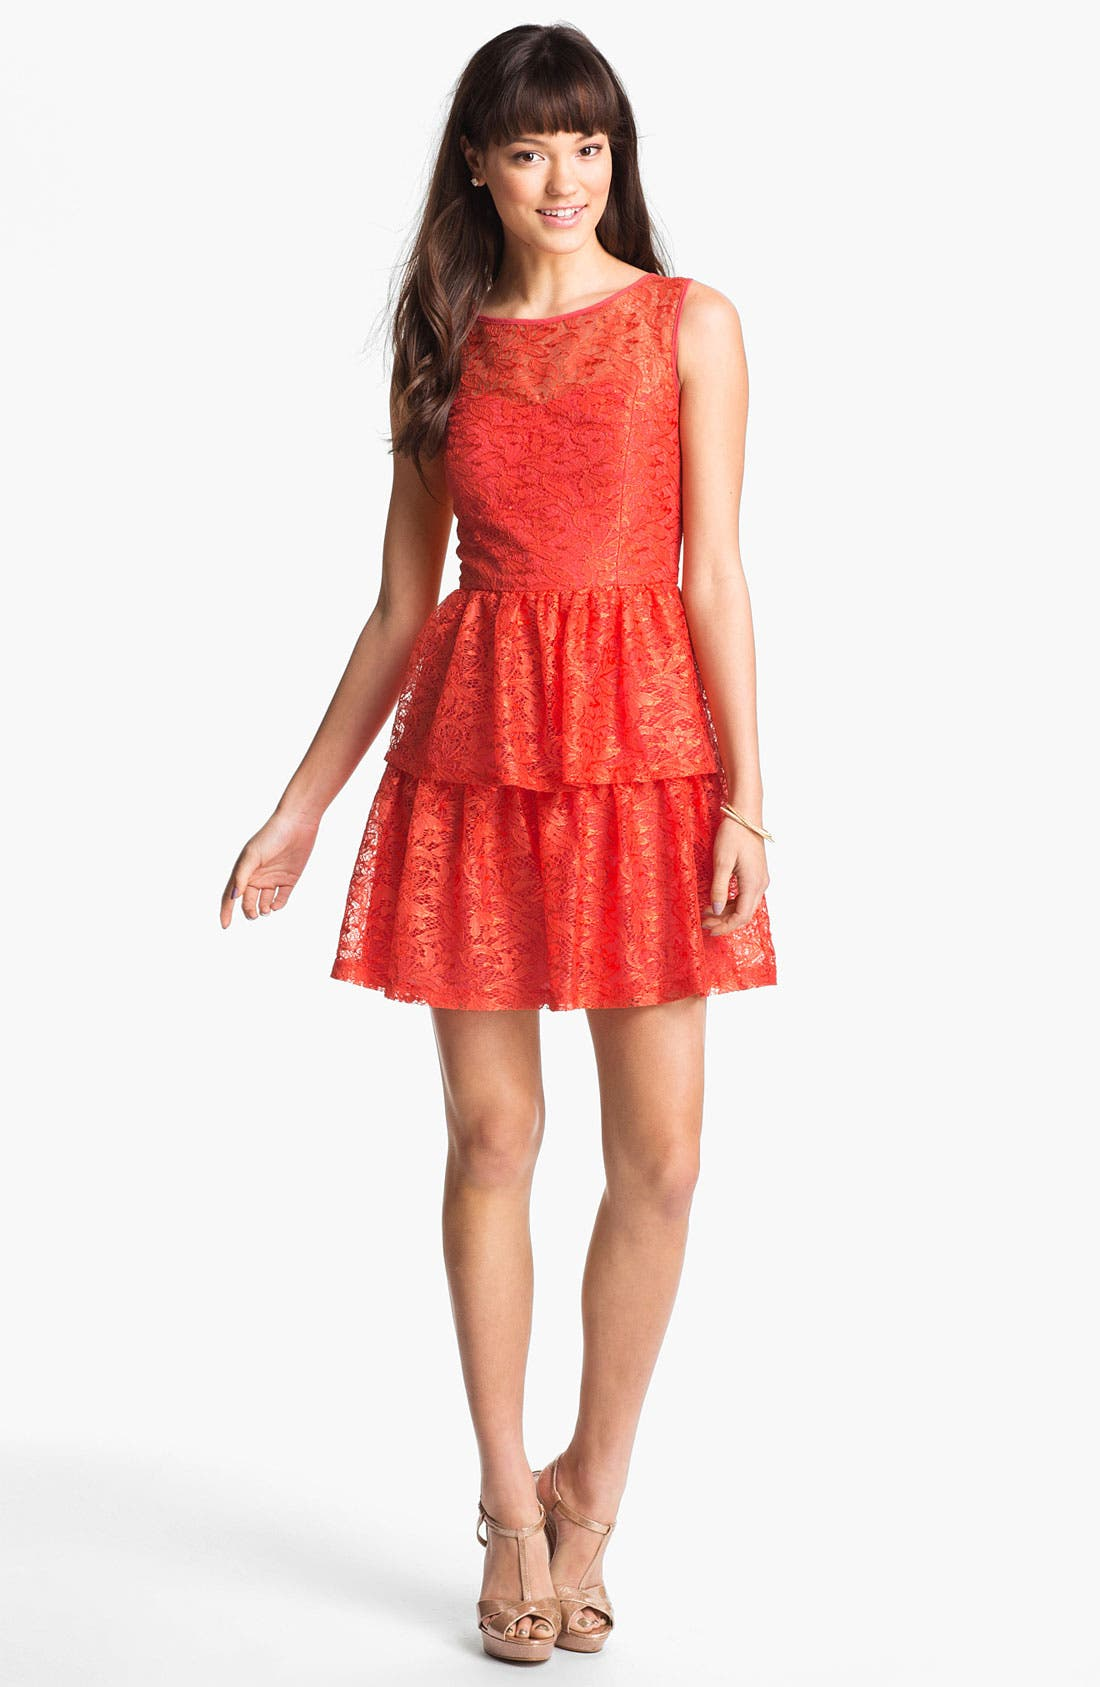 Main Image - Max & Cleo Tiered Lace Fit & Flare Dress